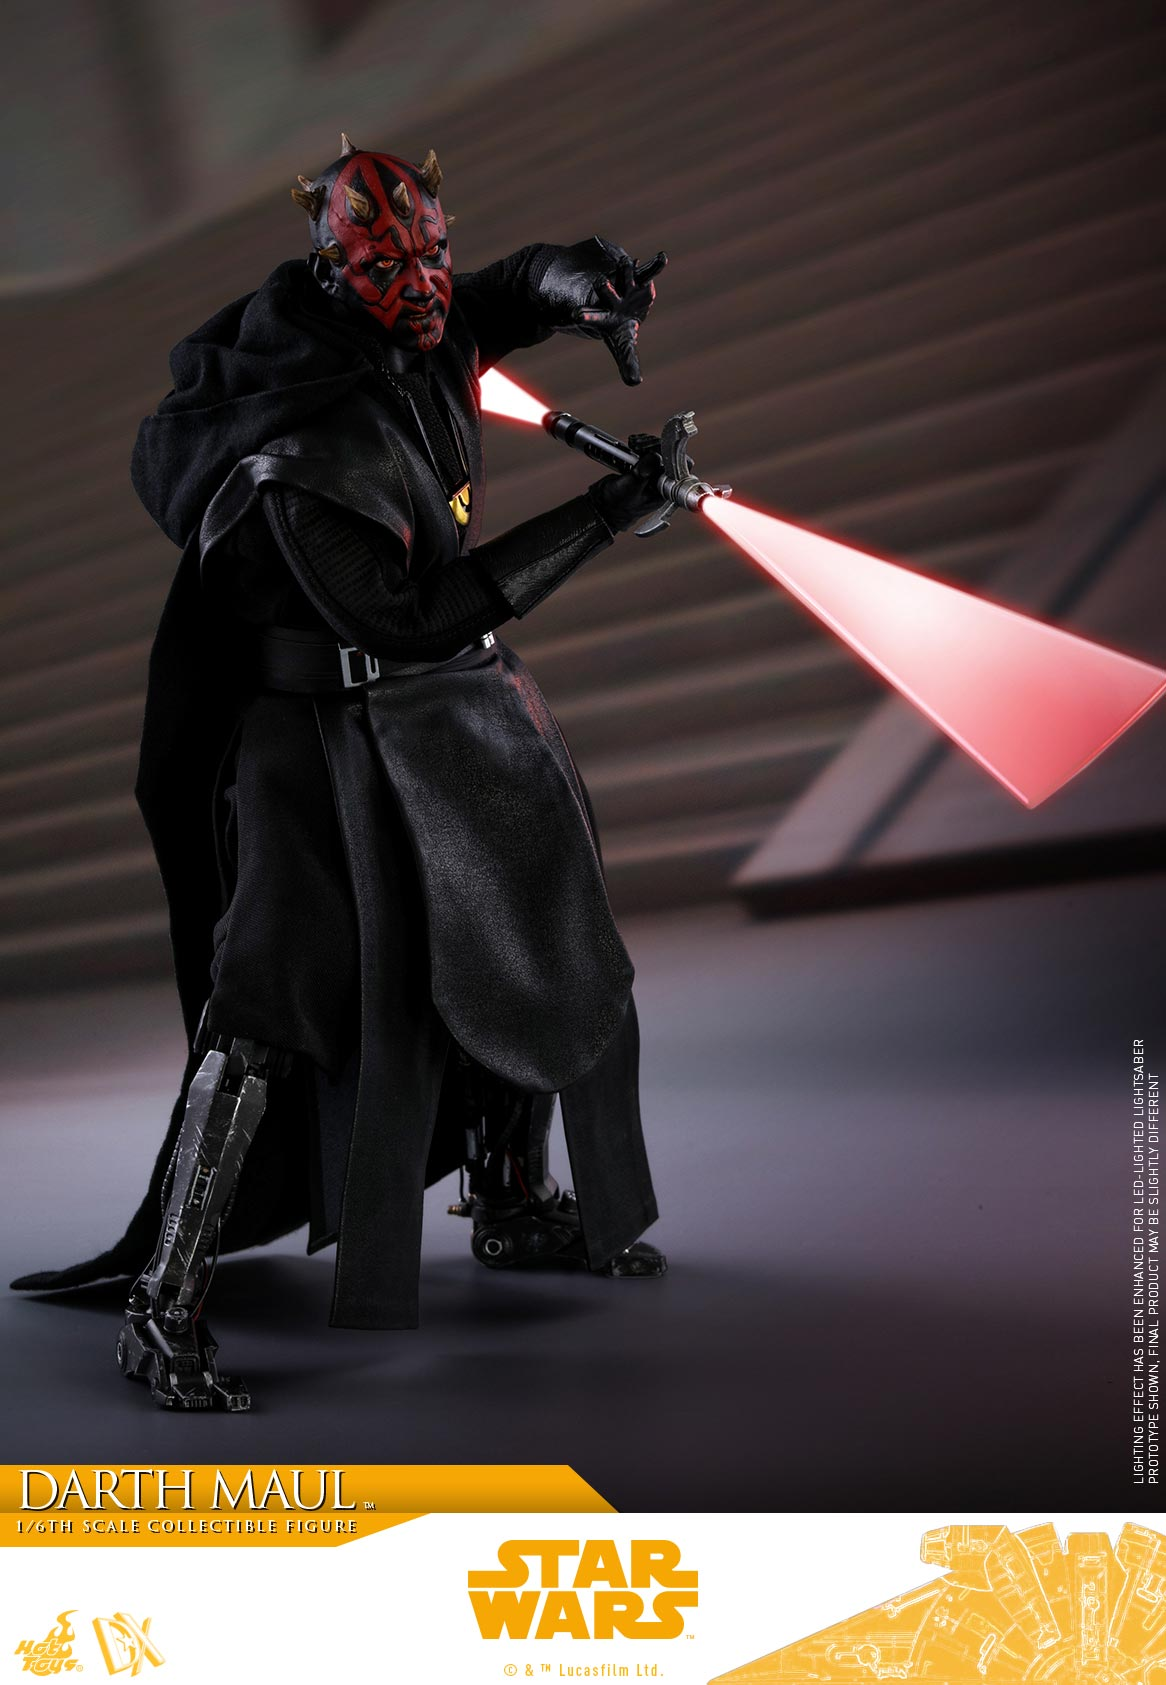 Hot-Toys---Solo---A-Star-Wars-Story---Darth-Maul-collectible-figure_PR1